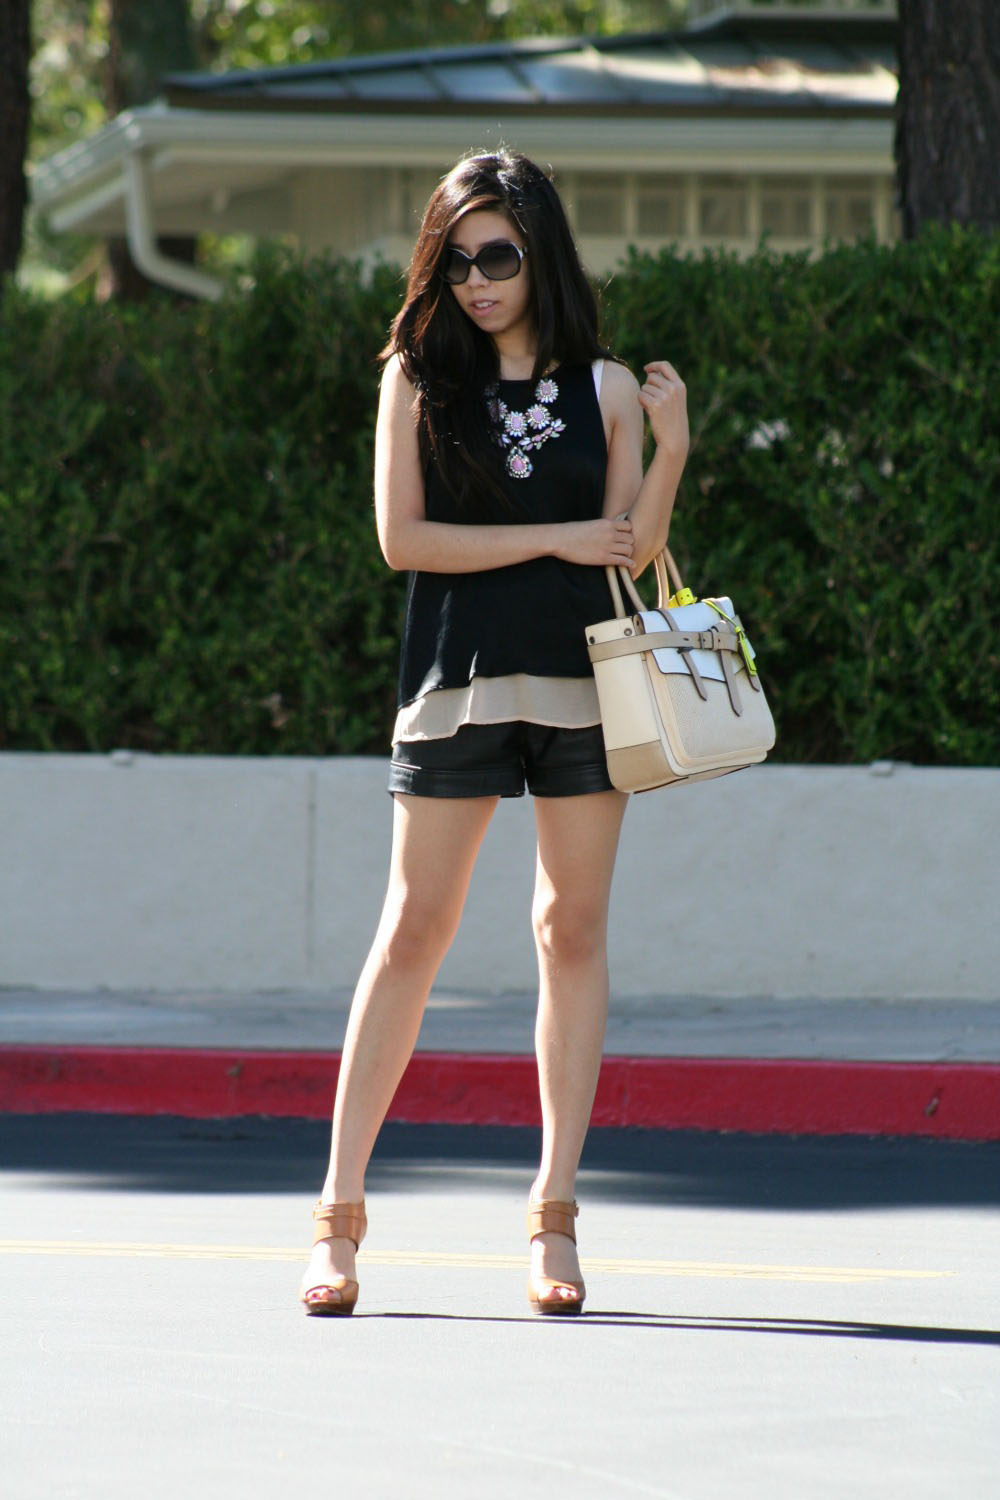 How to Wear Black Leather Shorts - How to Look Sophisticated in Black Leather Shorts